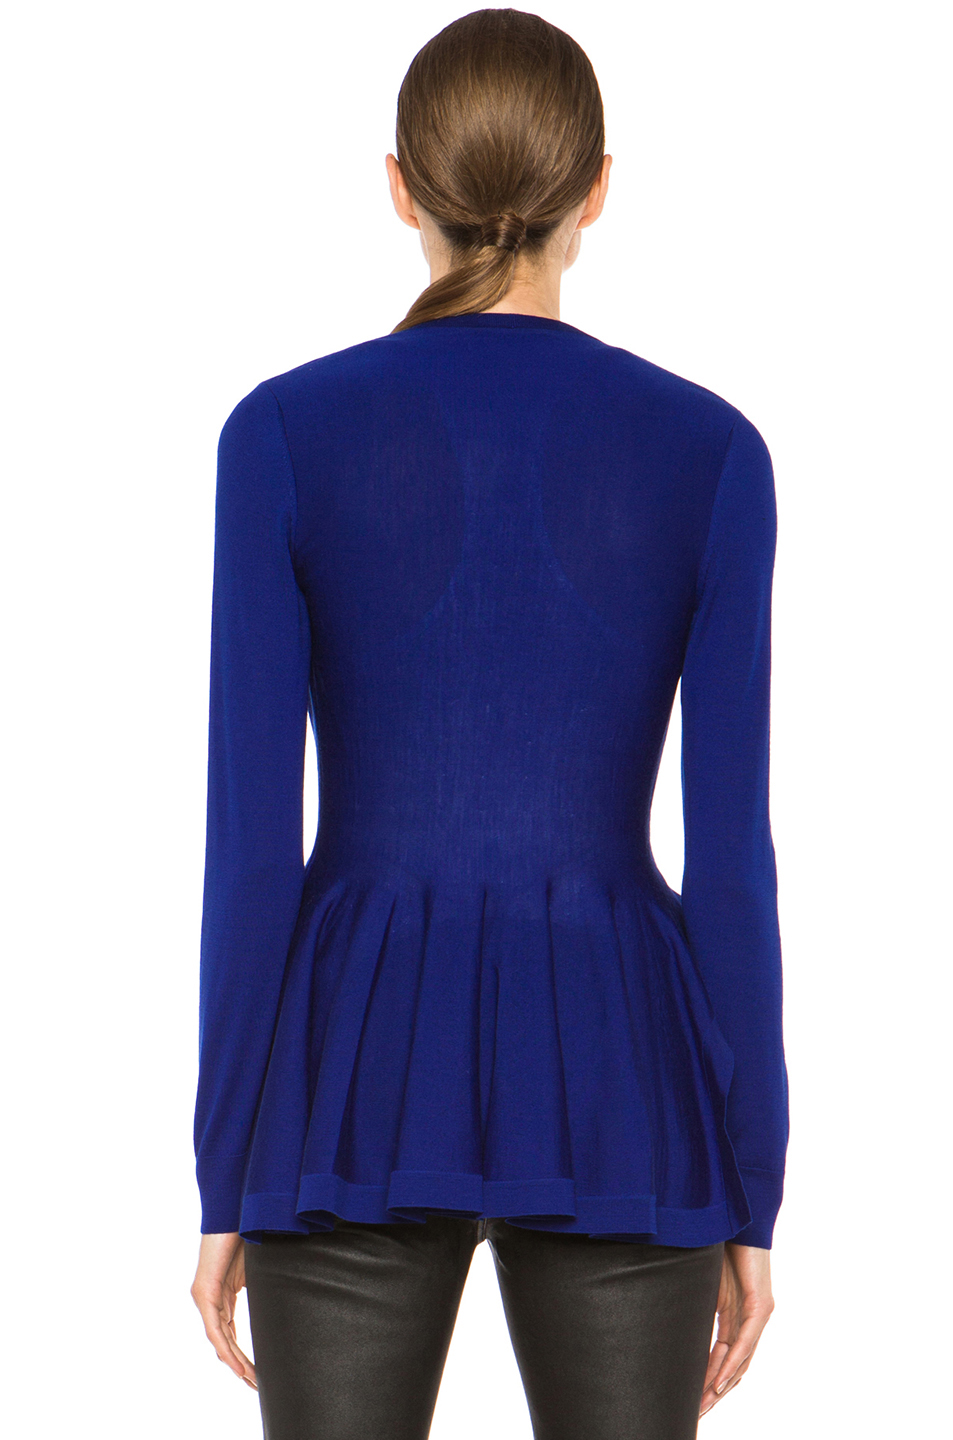 Royal Blue Cardigan Sweater - Cardigan With Buttons